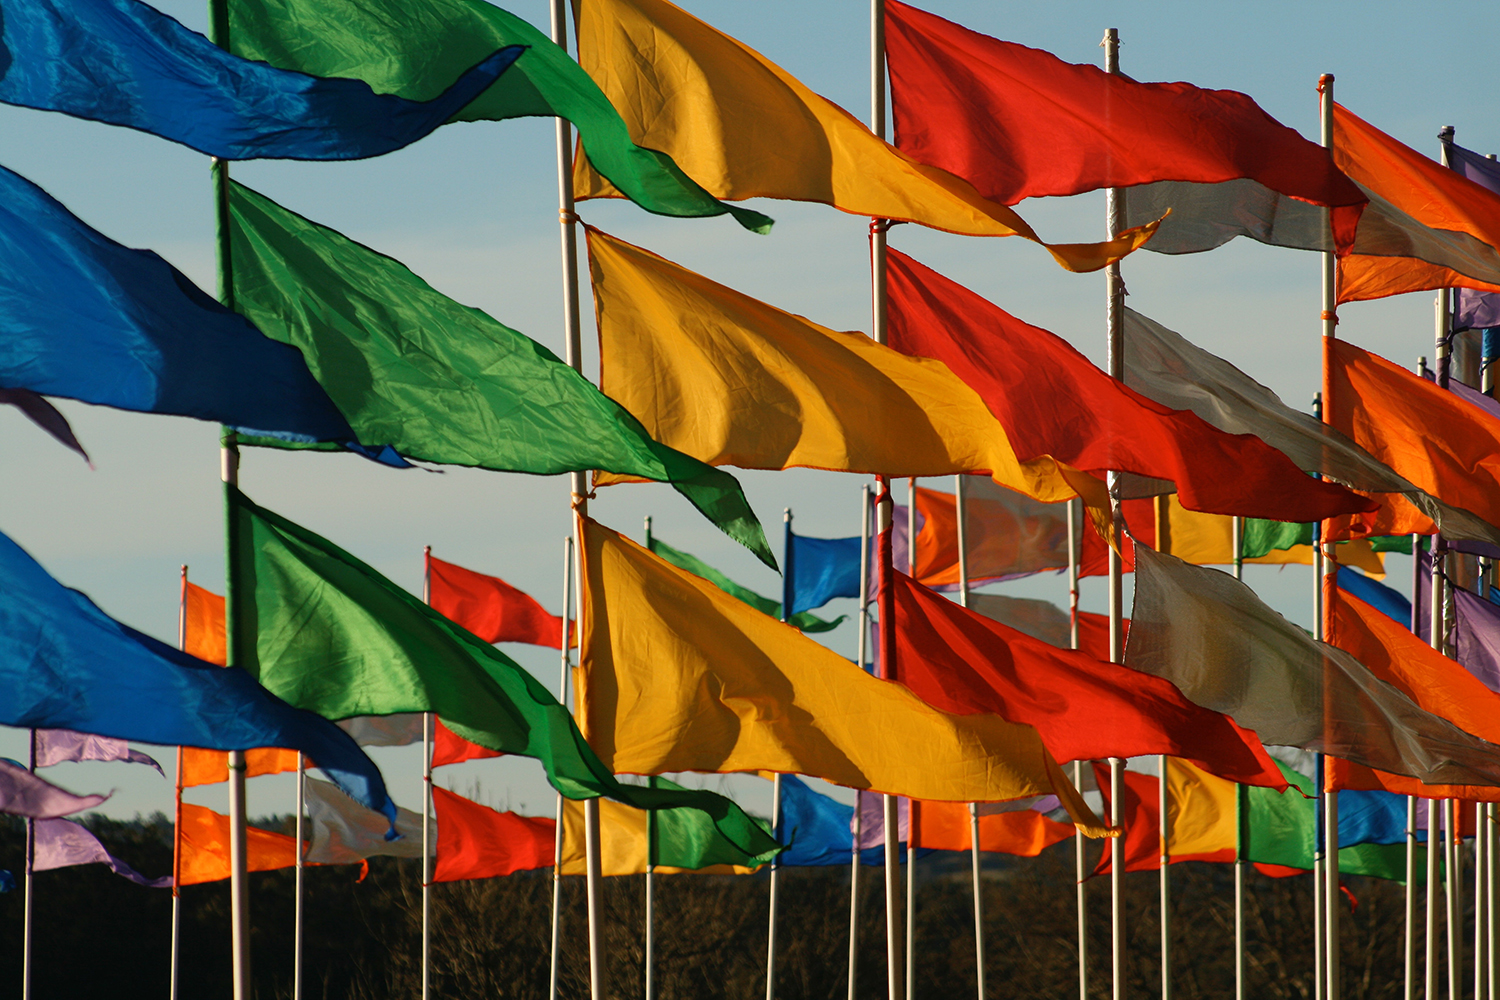 Flags That Generate Energy